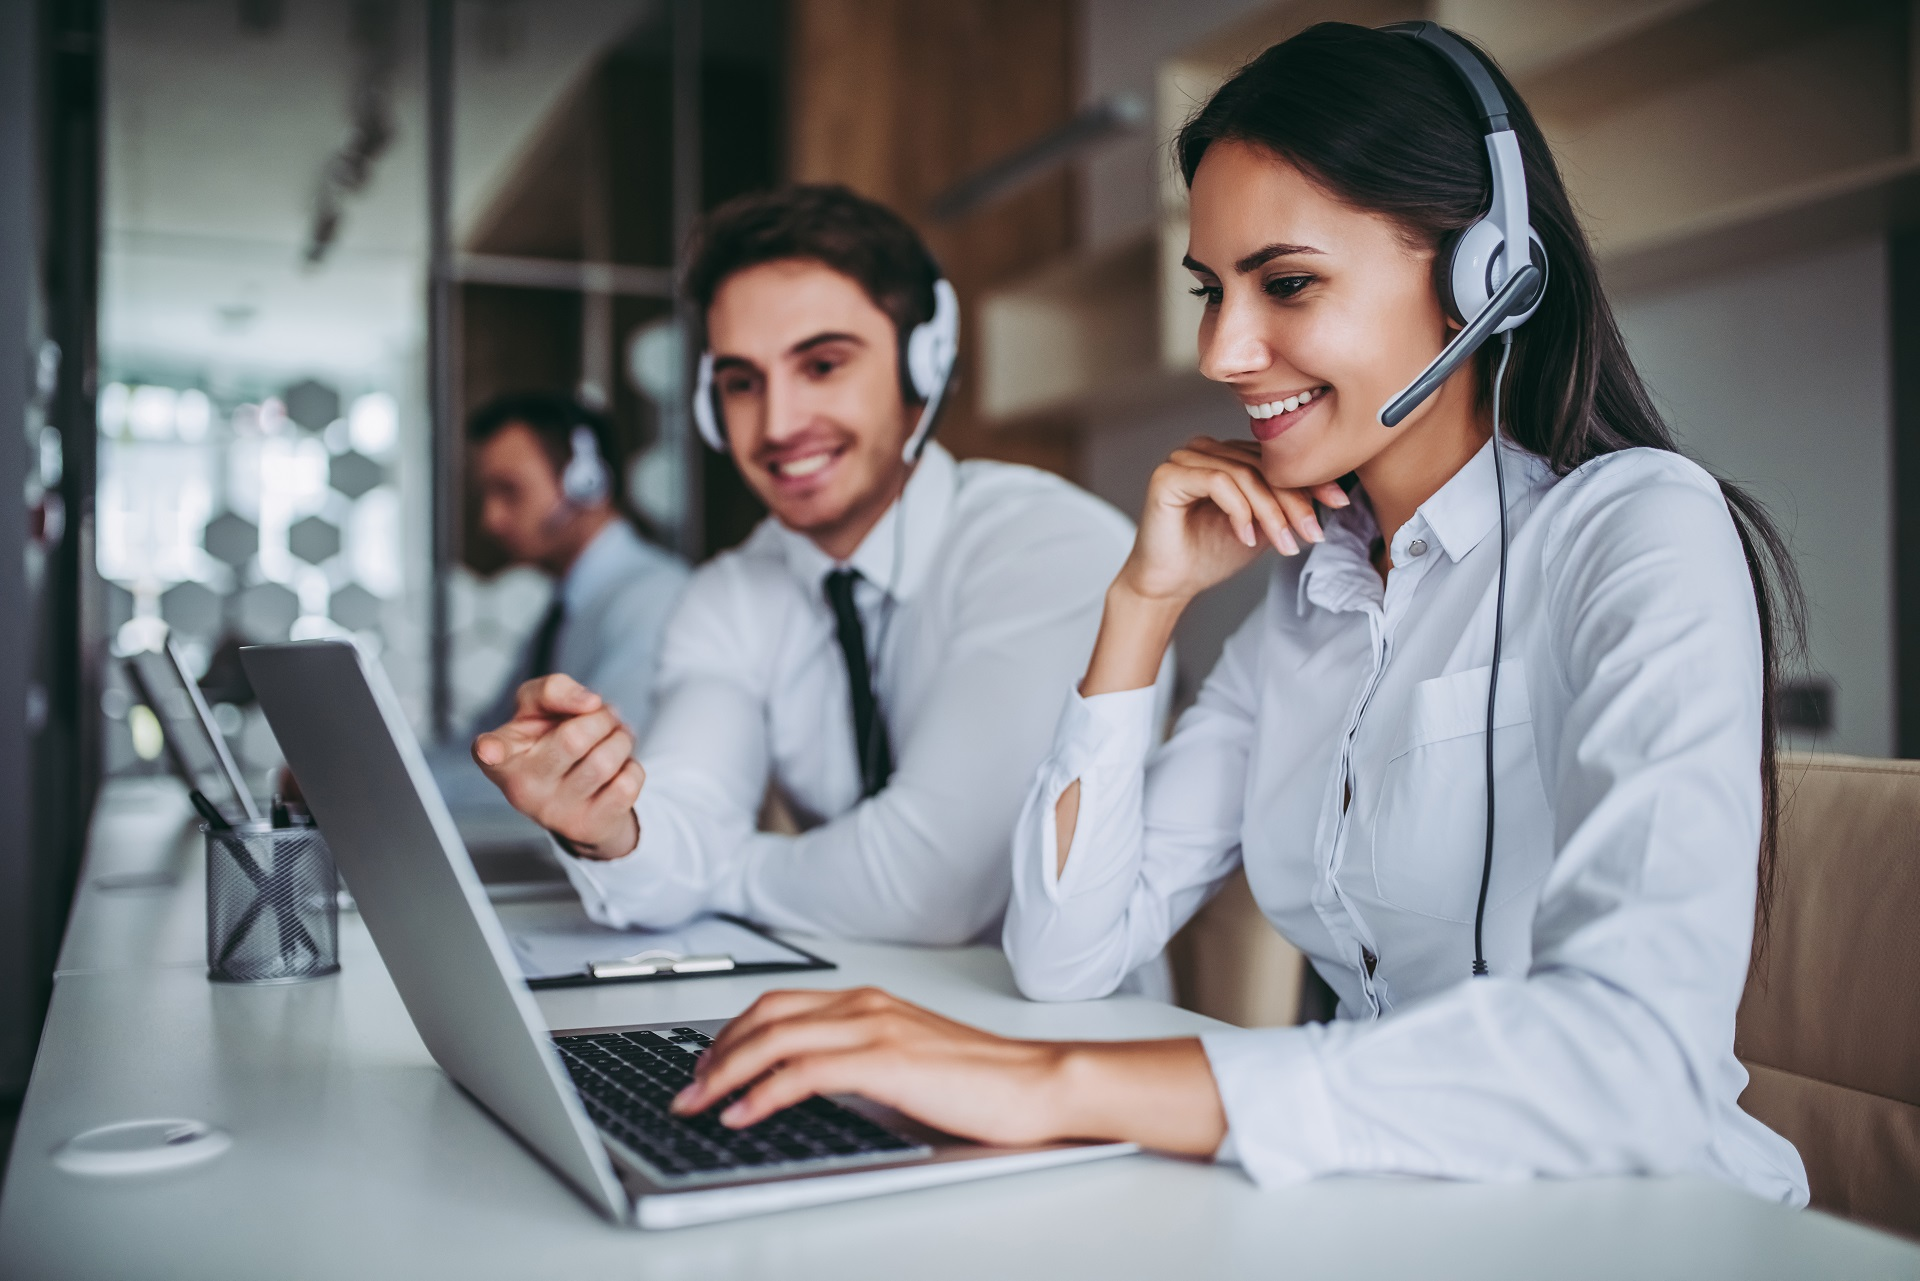 Contact centre challenges that your customers notice